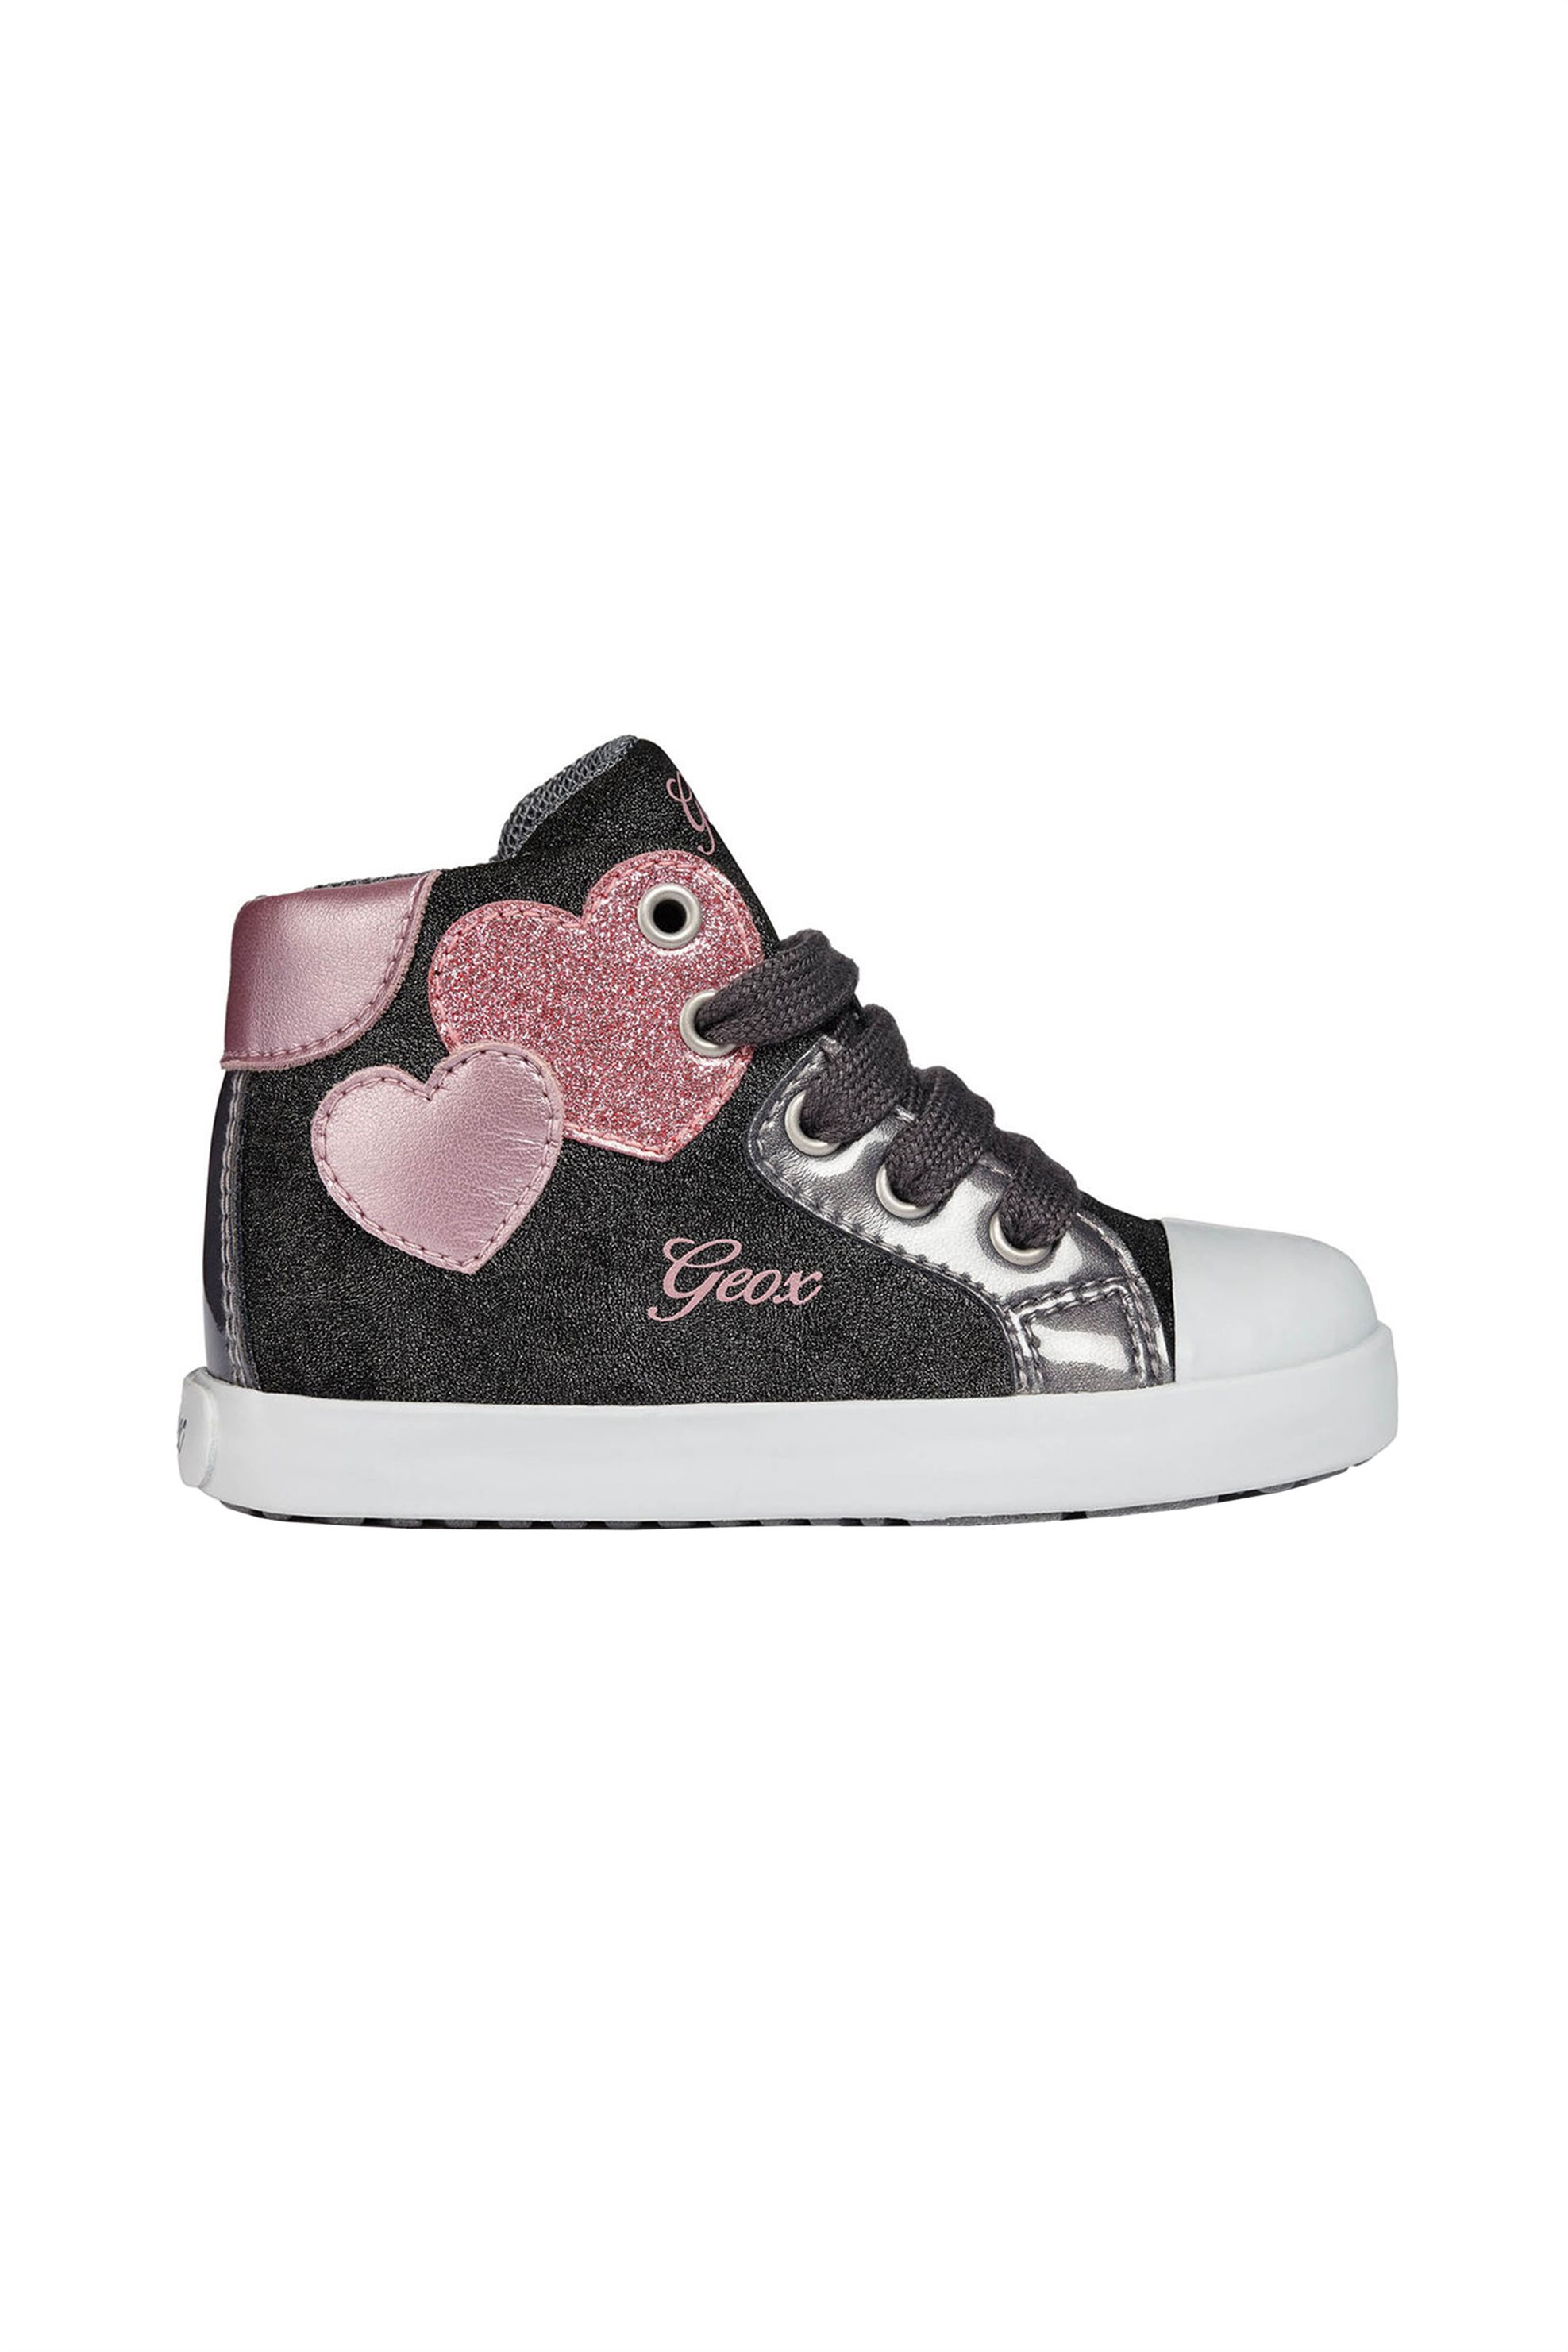 75383c1e0a0 Notos Geox παιδικά sneakers μποτάκια Baby Kilwi Girl - B84D5C - Μαύρο